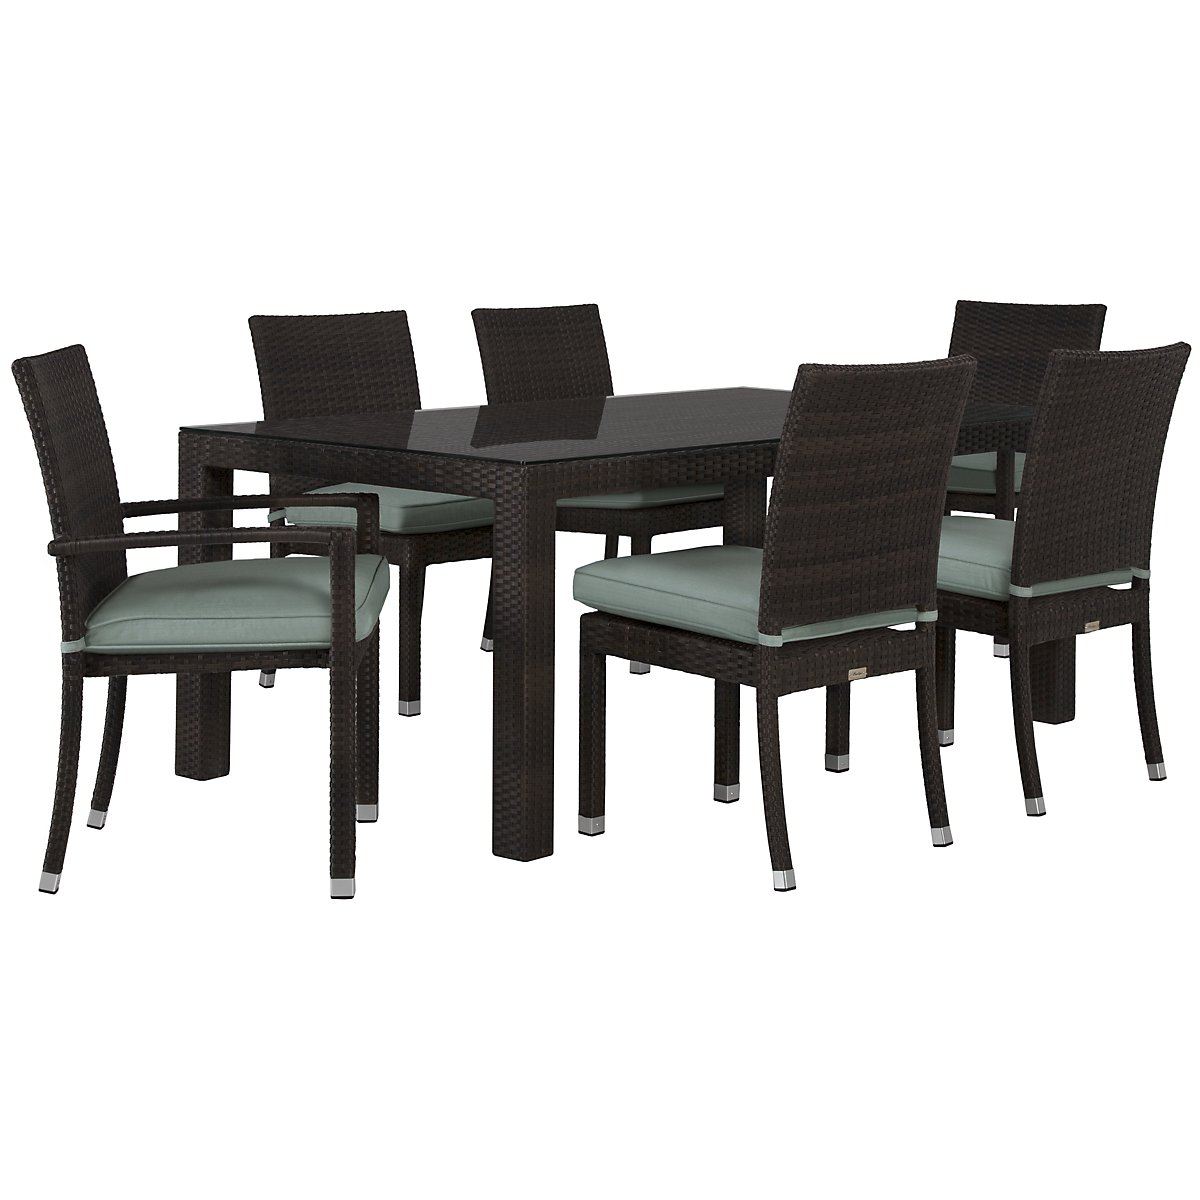 "Zen Teal 72"" Rectangular Table & 4 Chairs"